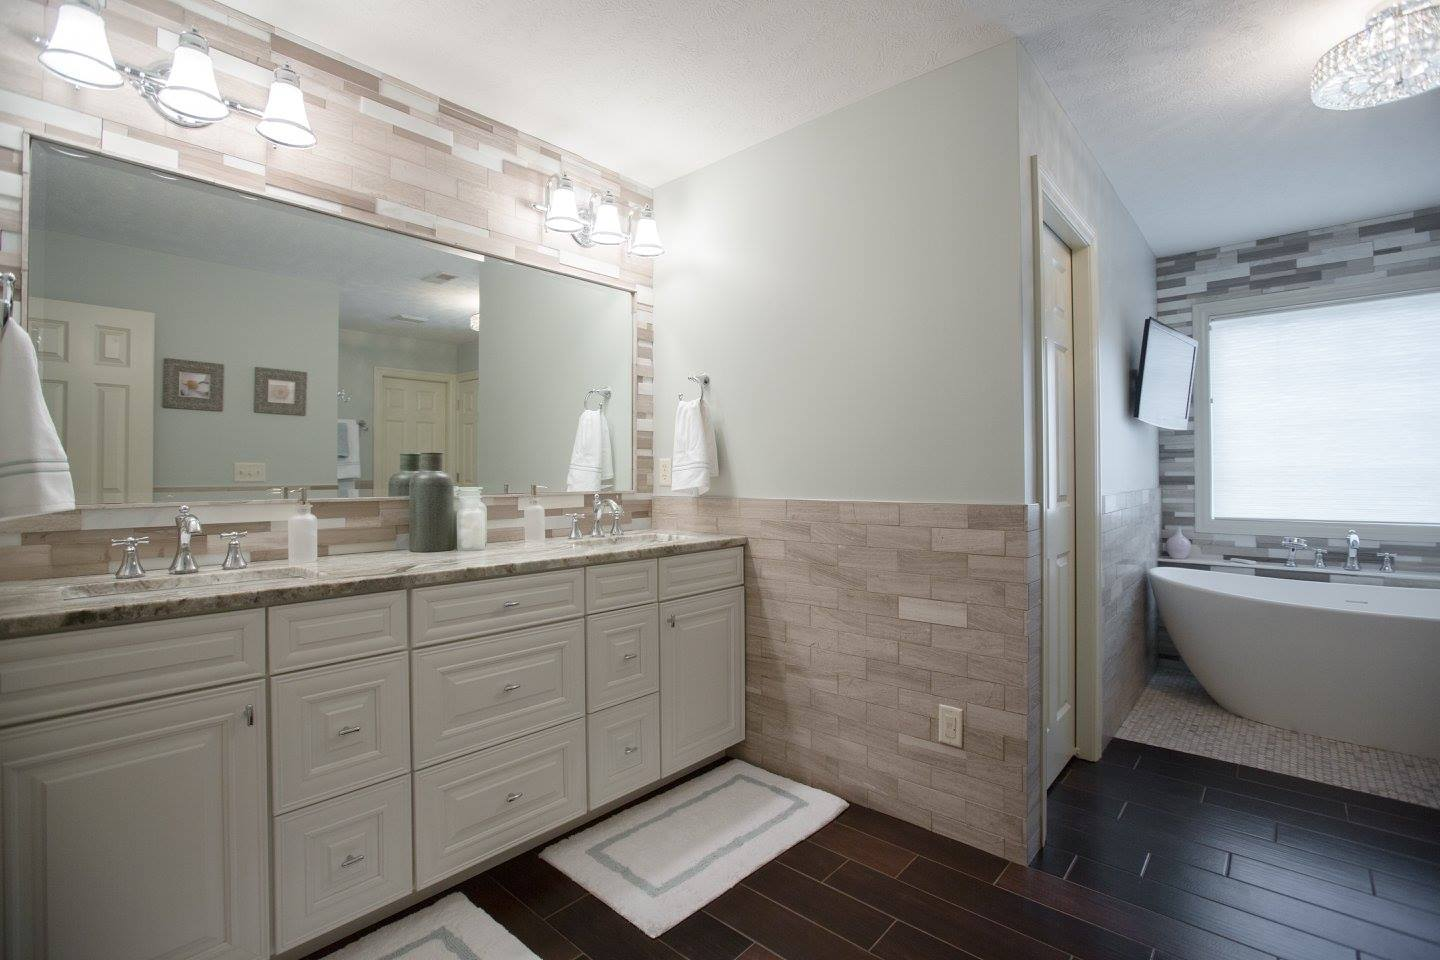 Bathroom Wall Systems Archives - Luxury Bathroom Remodeling - One ...